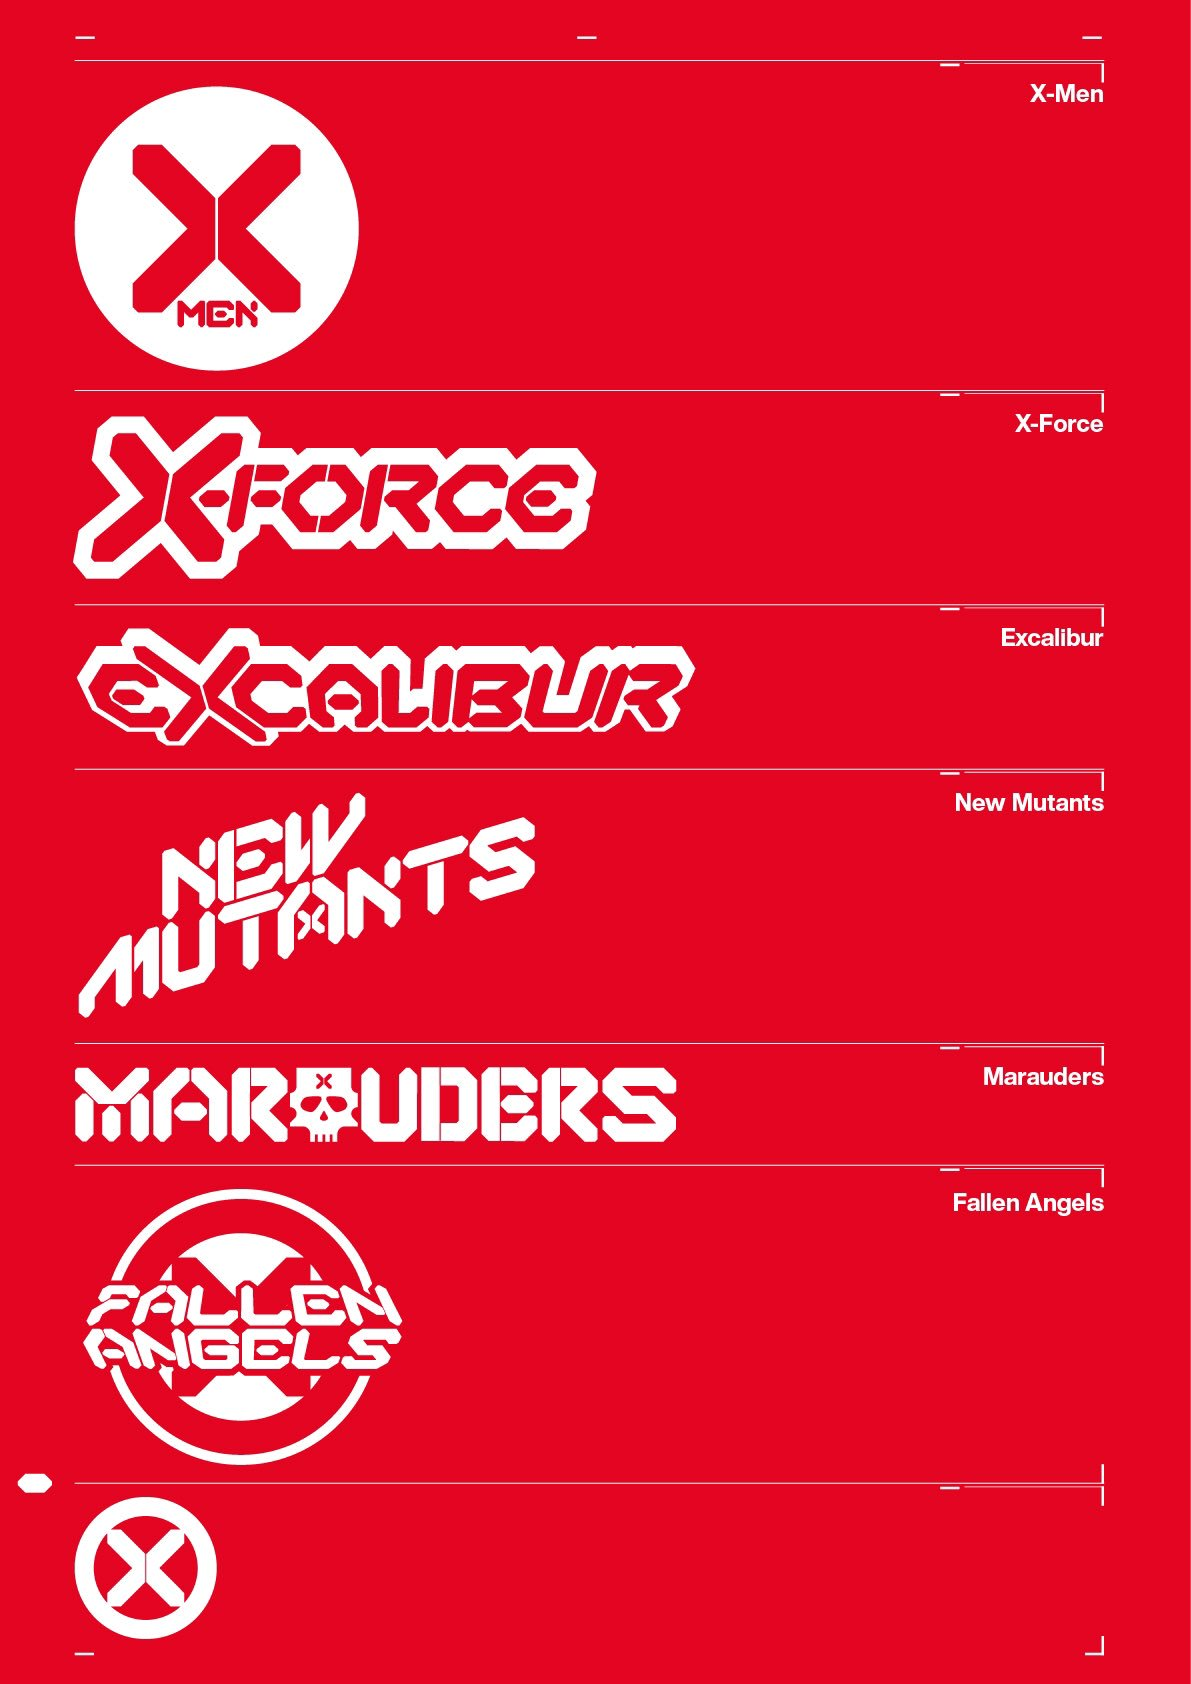 Marvel Comics na SDCC 2019 - X-Men - logos - Blog Farofeiros